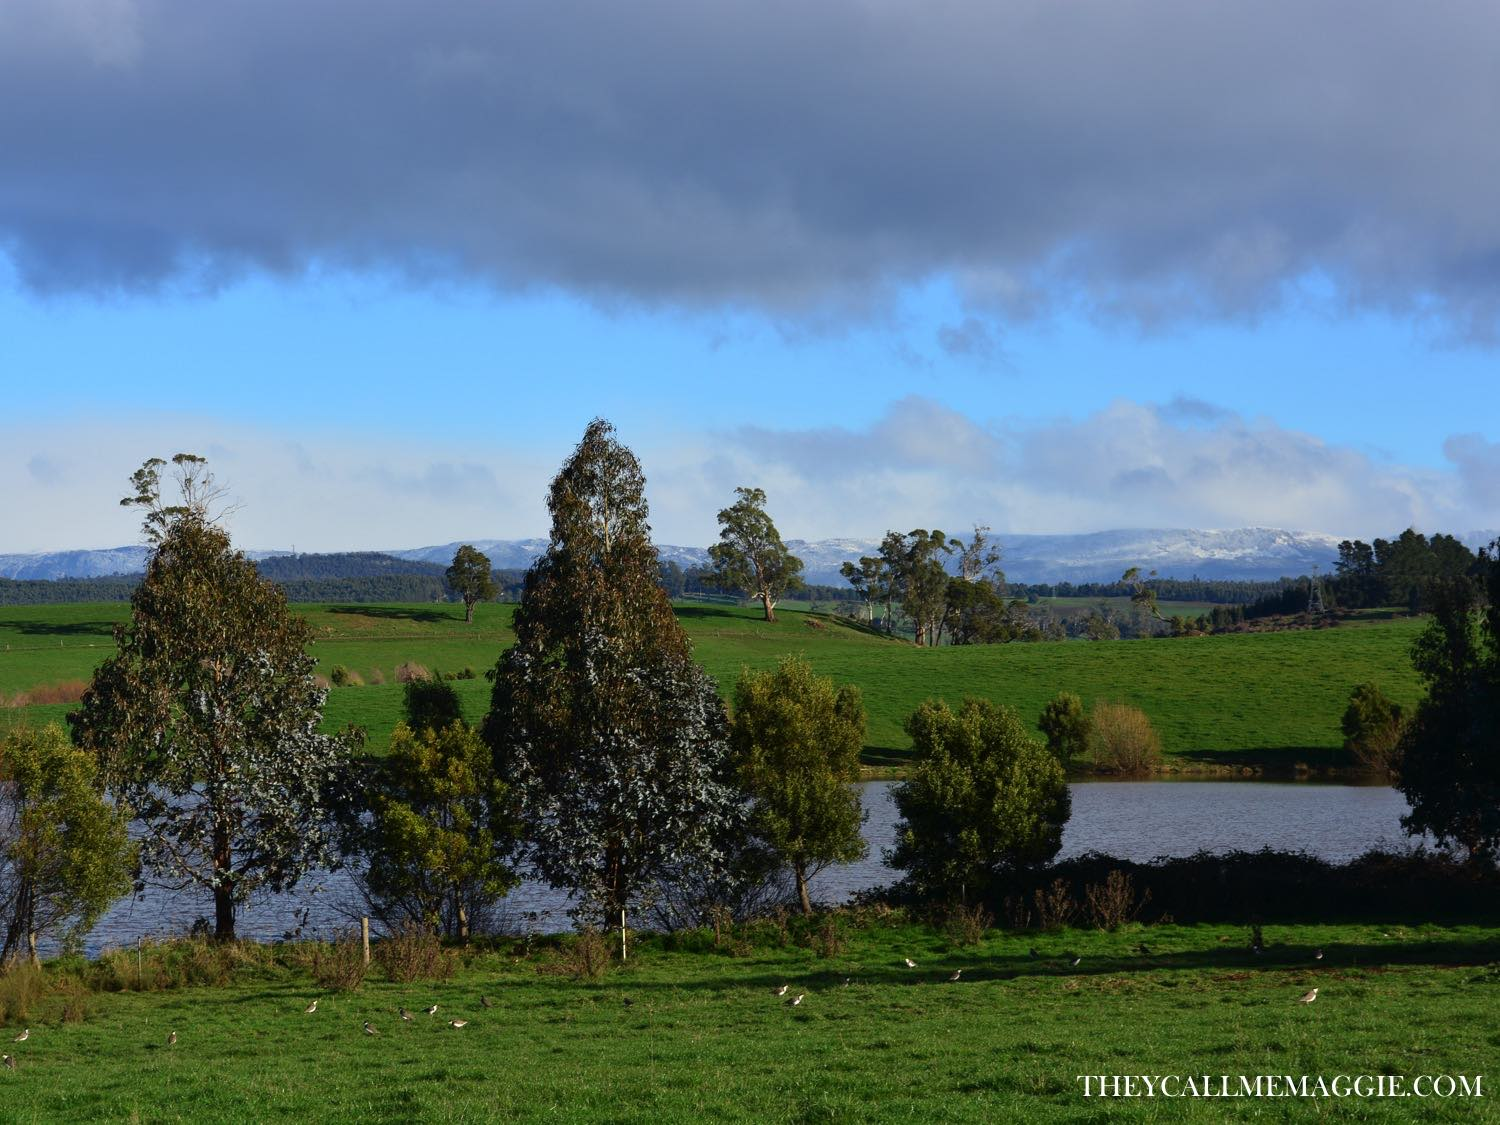 We caught a glimpse or two of Cradle Mountain during our drives between Launceston and Devonport. What. A. Tease.